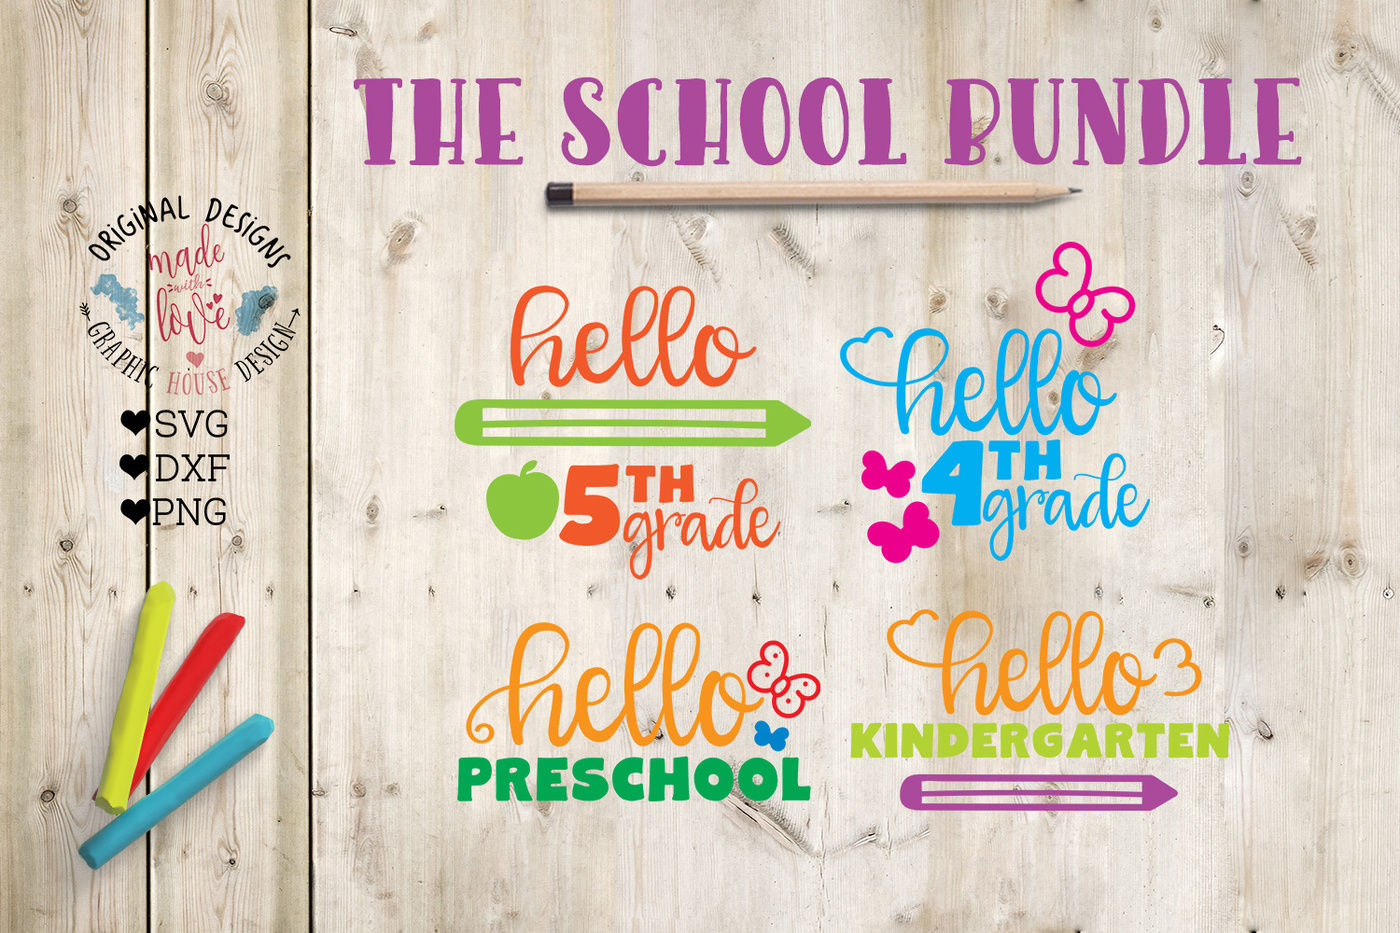 School Bundle Svg Dxf Png By Graphichousedesign